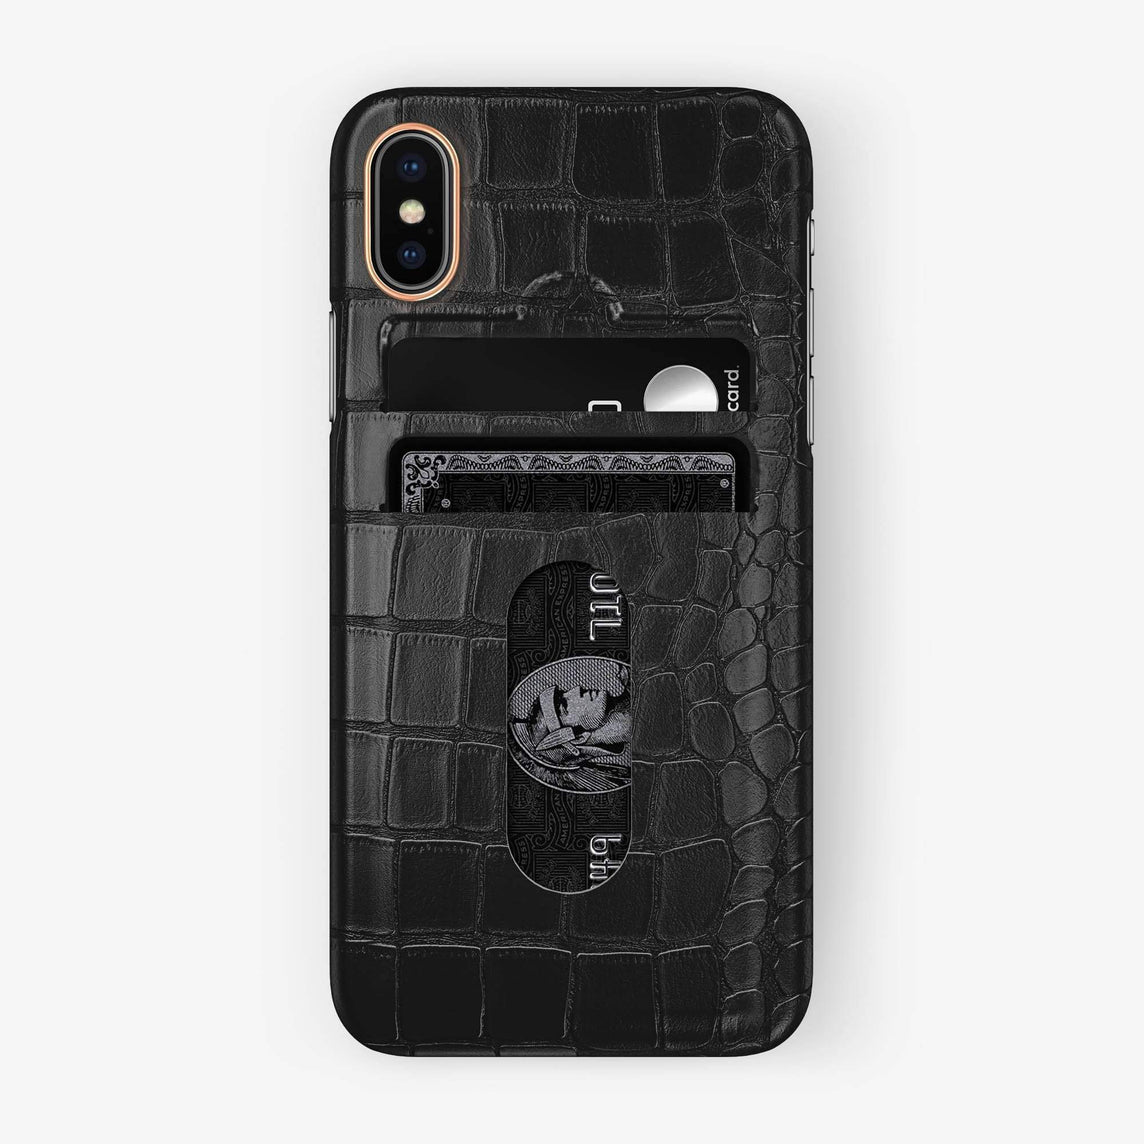 Alligator Card Holder Case iPhone Xs Max | Black - Rose Gold - Hadoro